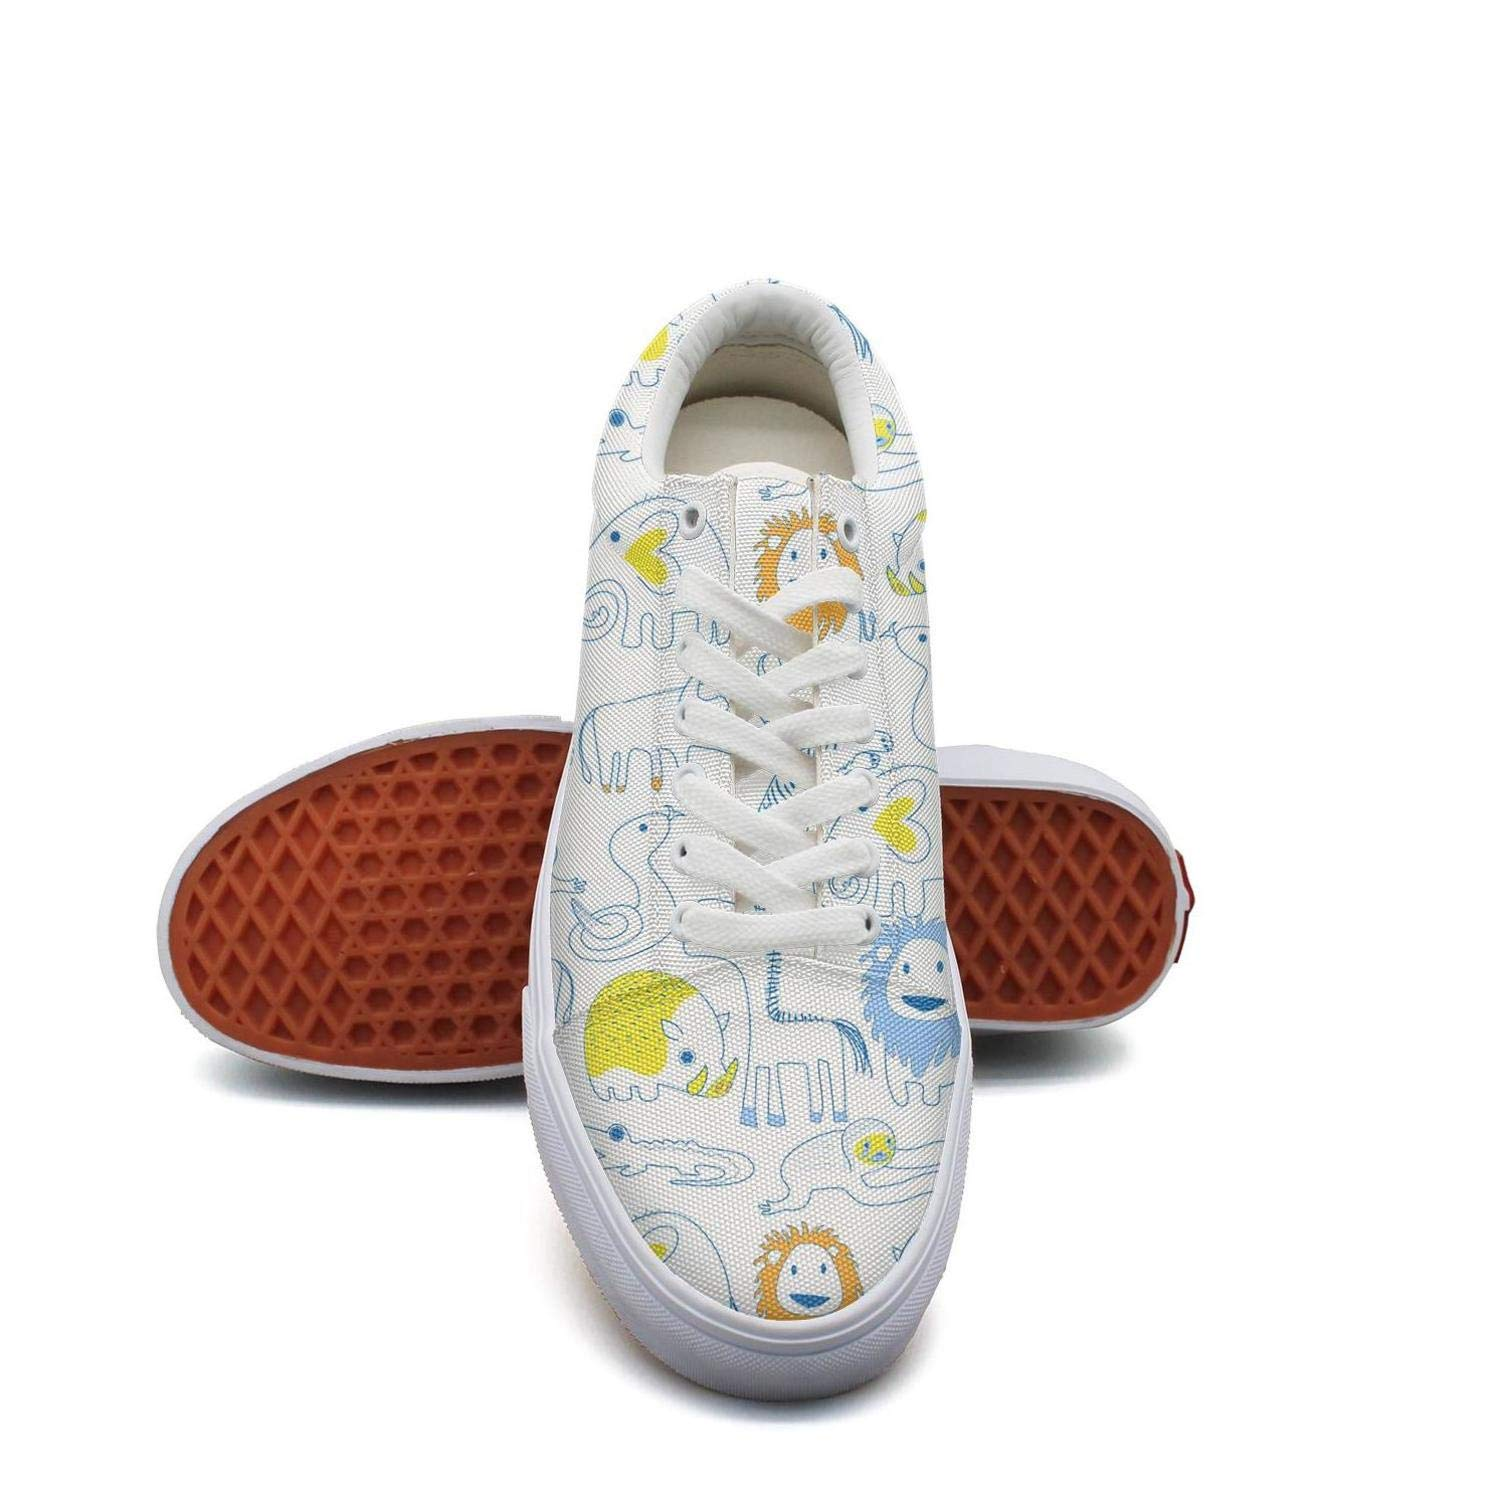 Toxeu White Animals Sloth Lace Up Sneakers Canvas Skate Shoes for Men Fashion